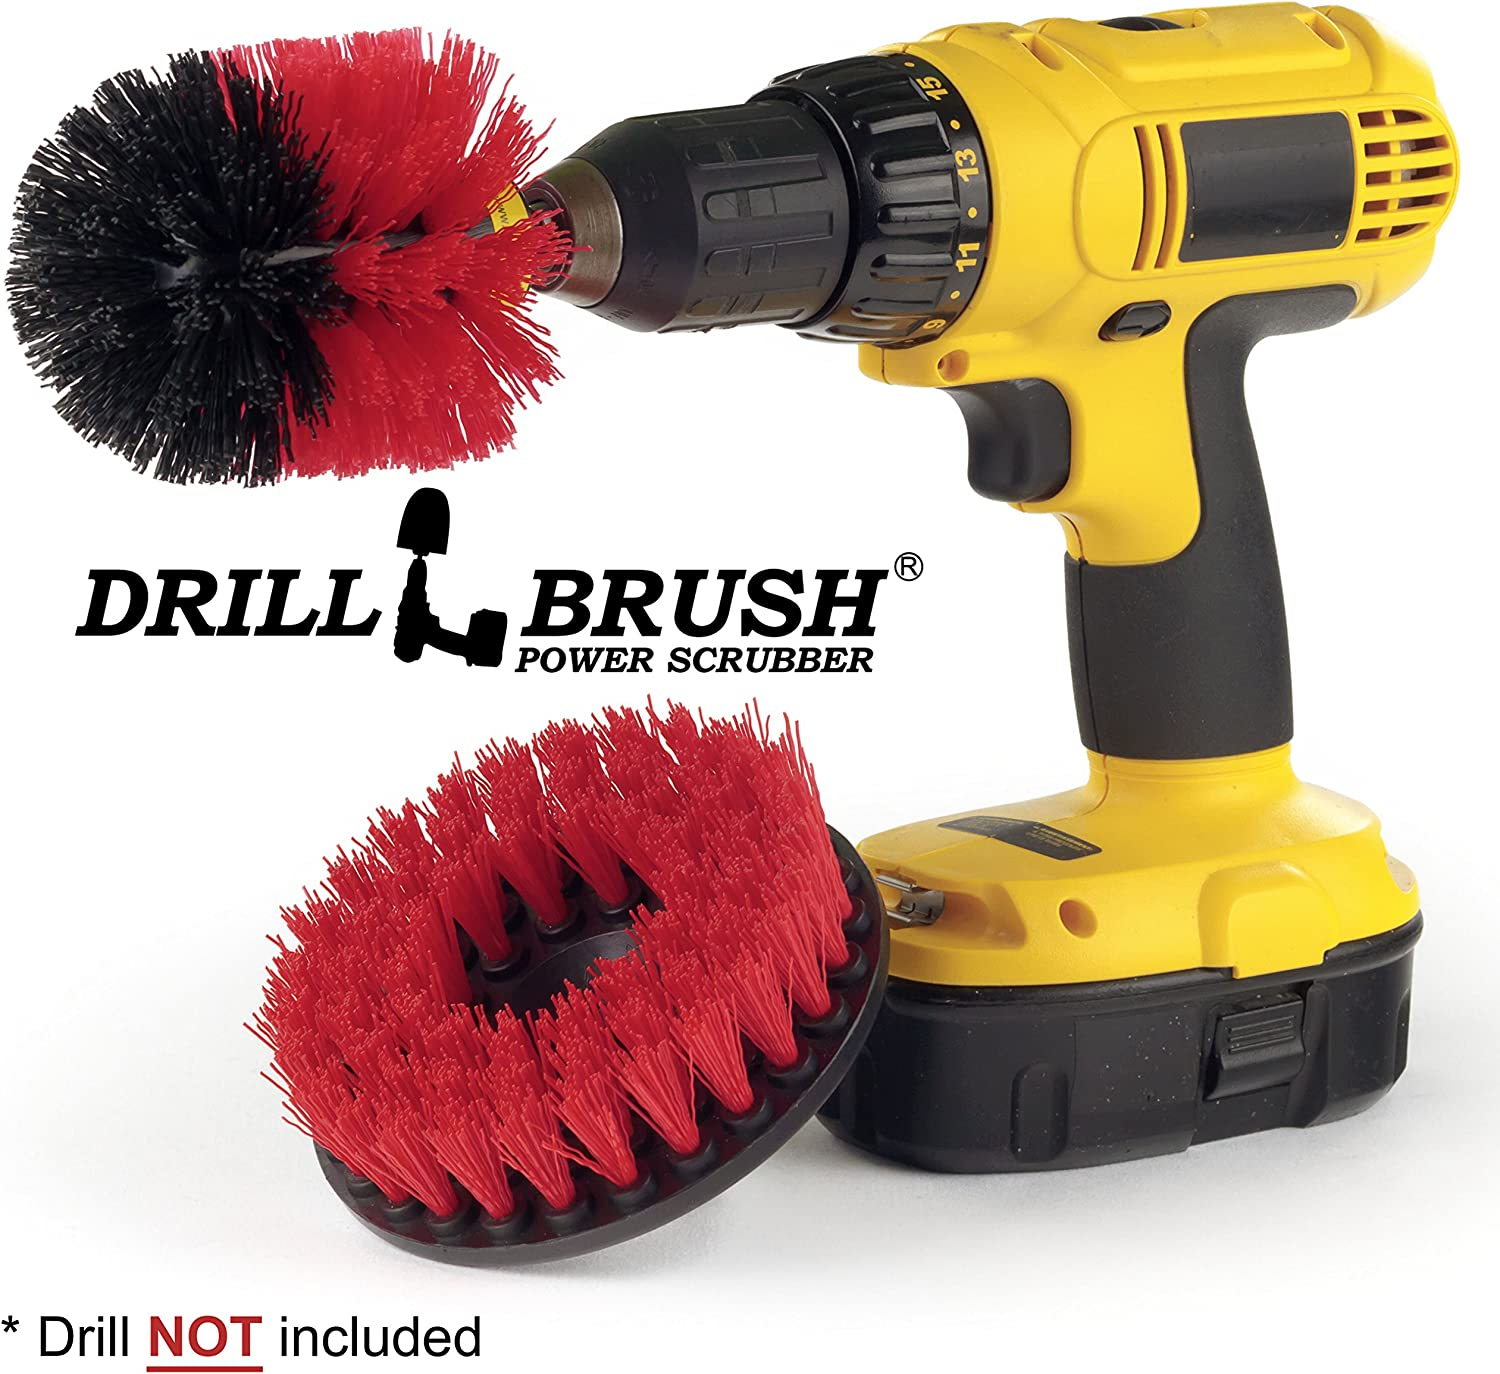 Drill Brush - Outdoor - Cleaning Supplies - Deck Brush - Bird Bath - Patio Furniture - Garden Statues - Water Fountain - Pond - Scrub Brush - Mold Remover- Grout Cleaner - Marble - Concrete - Brick